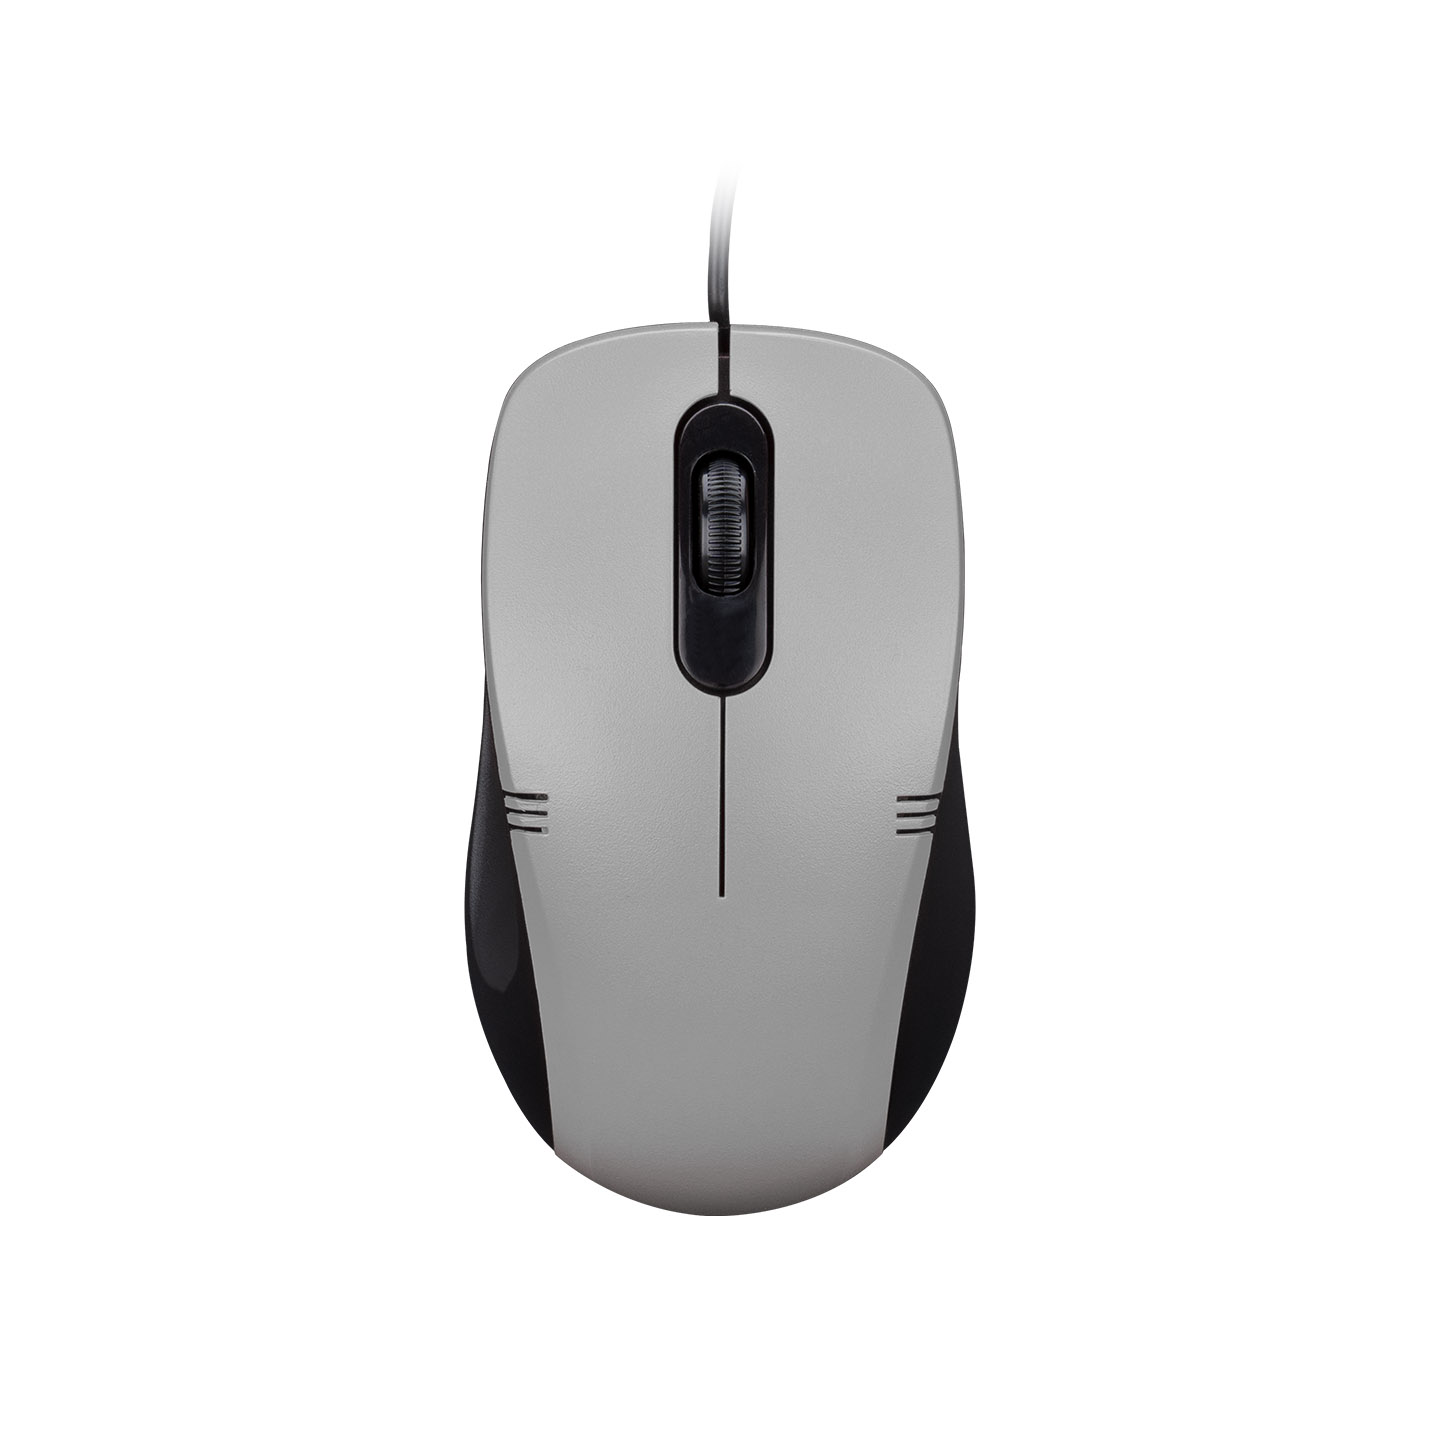 Everest SM-258 Usb Gümüş 1200dpi Optik Kablolu Mouse